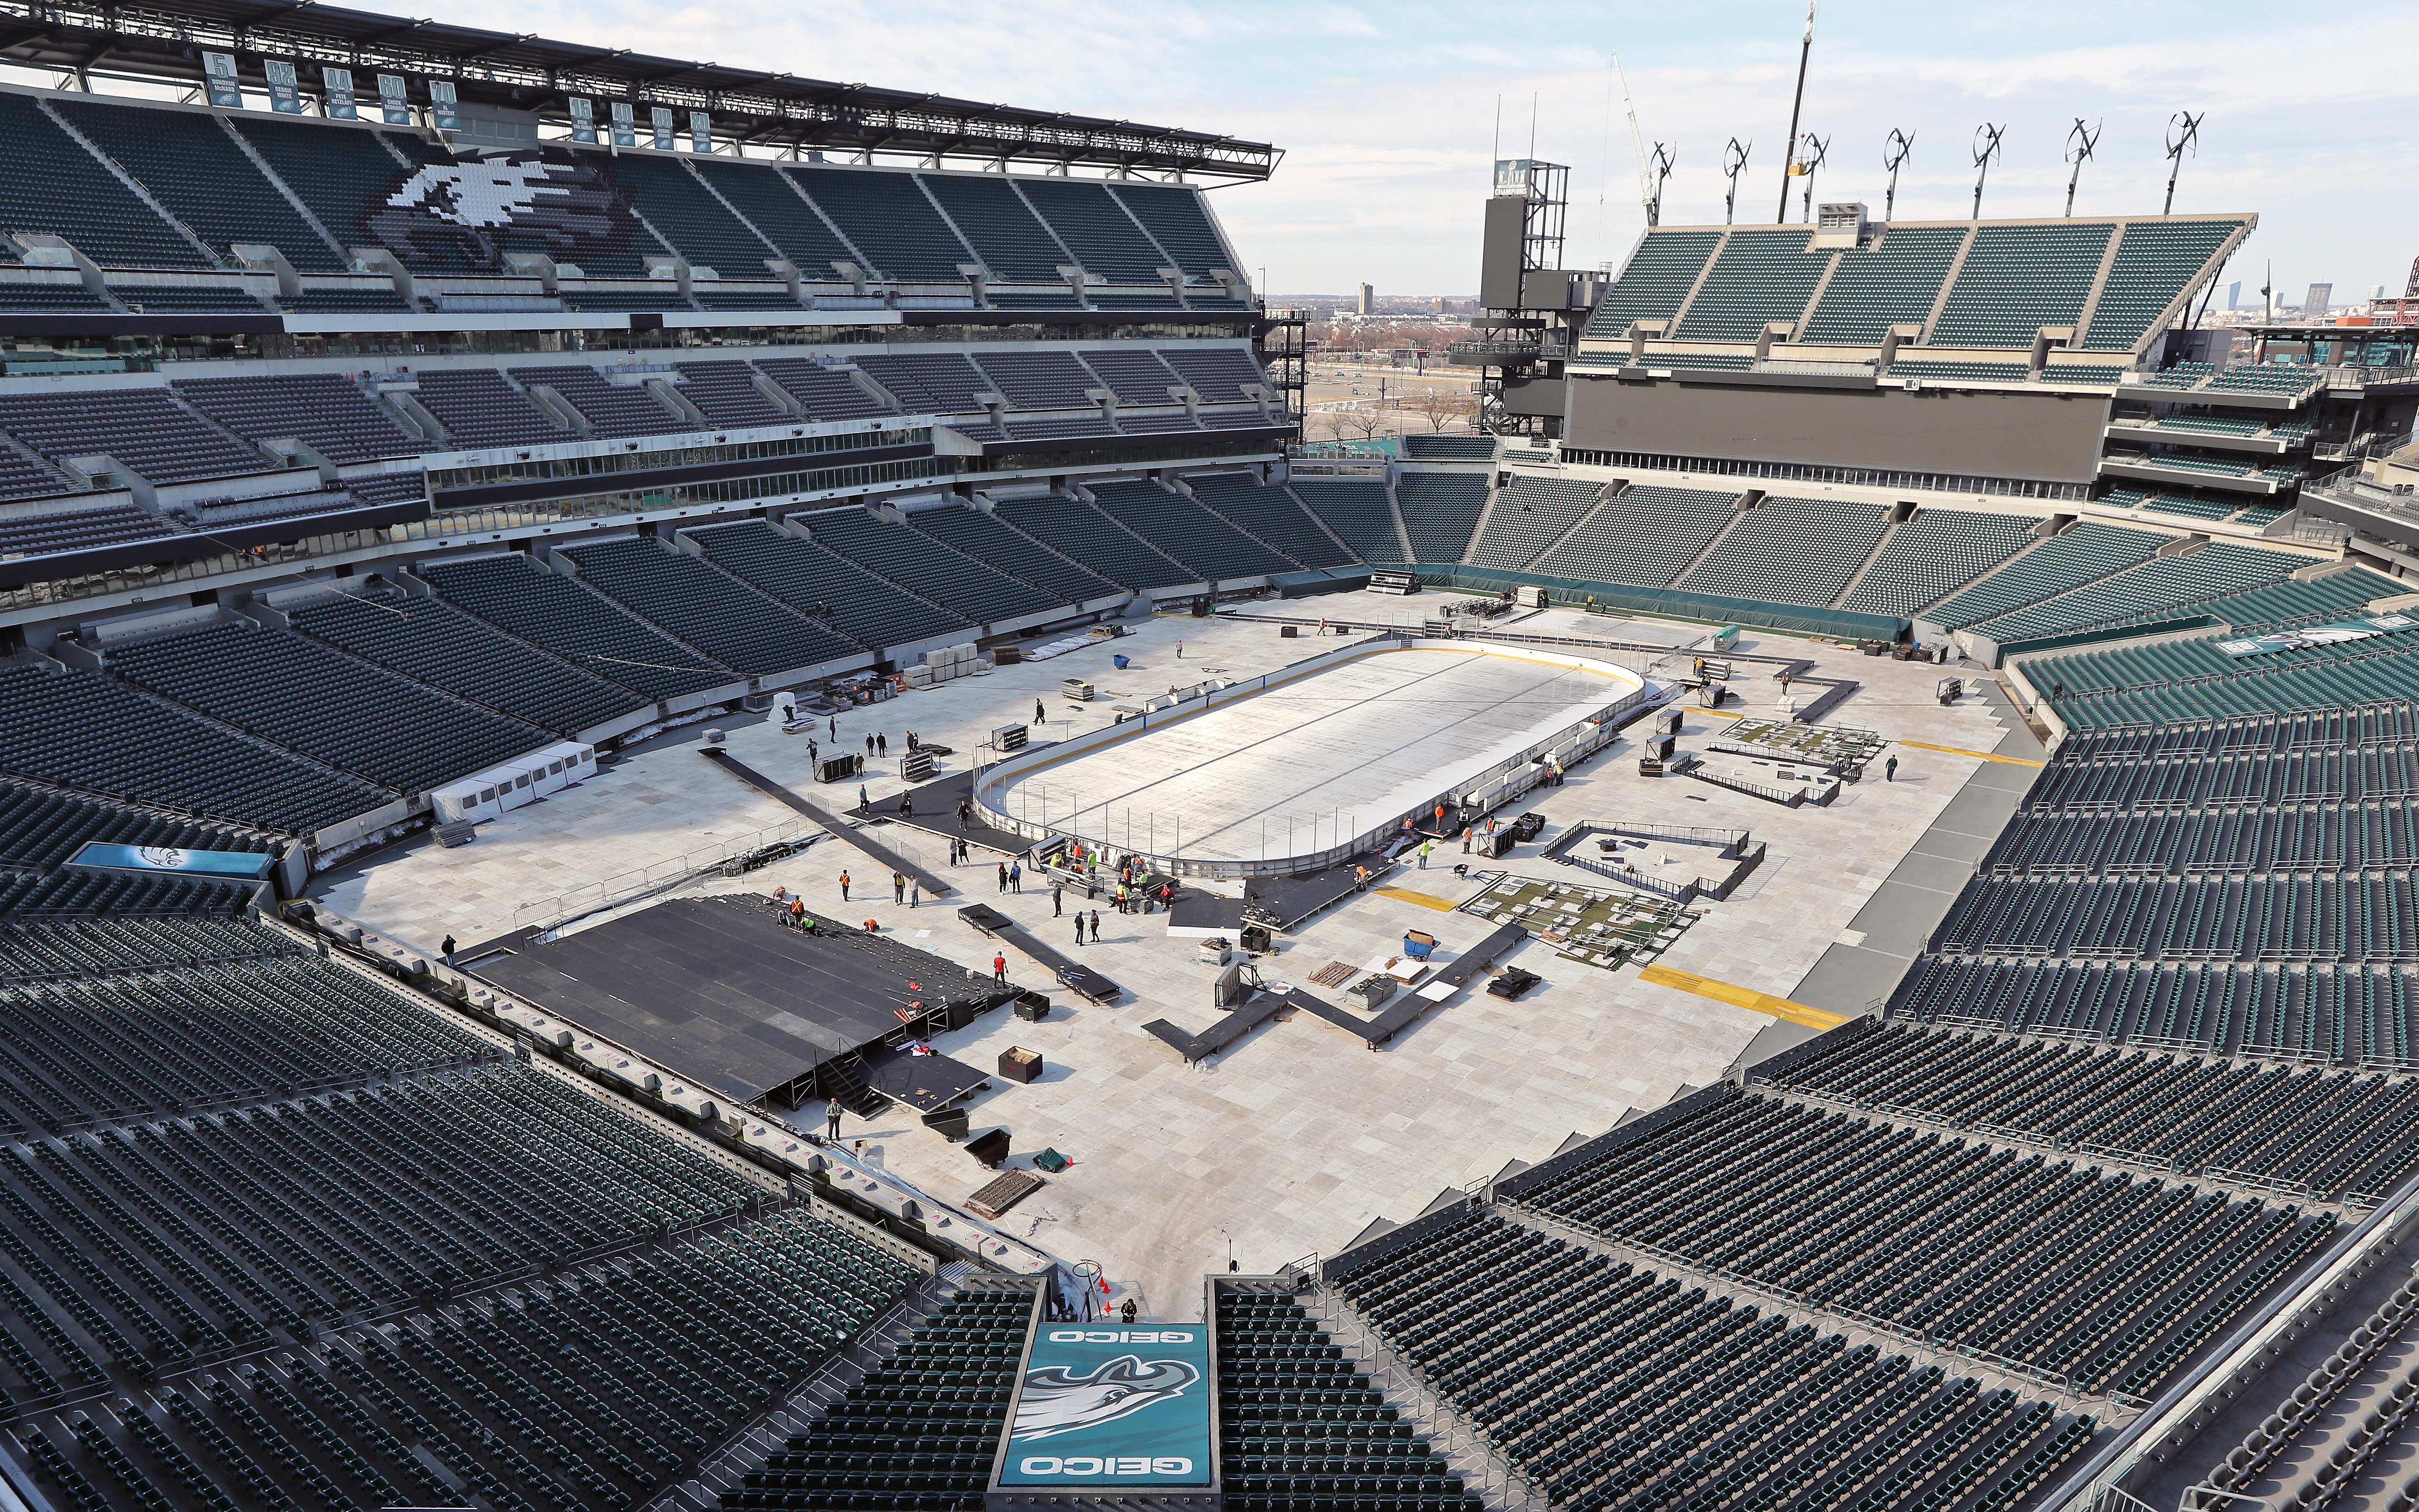 2019 Coors Light NHL Stadium Series - Rink Build Out